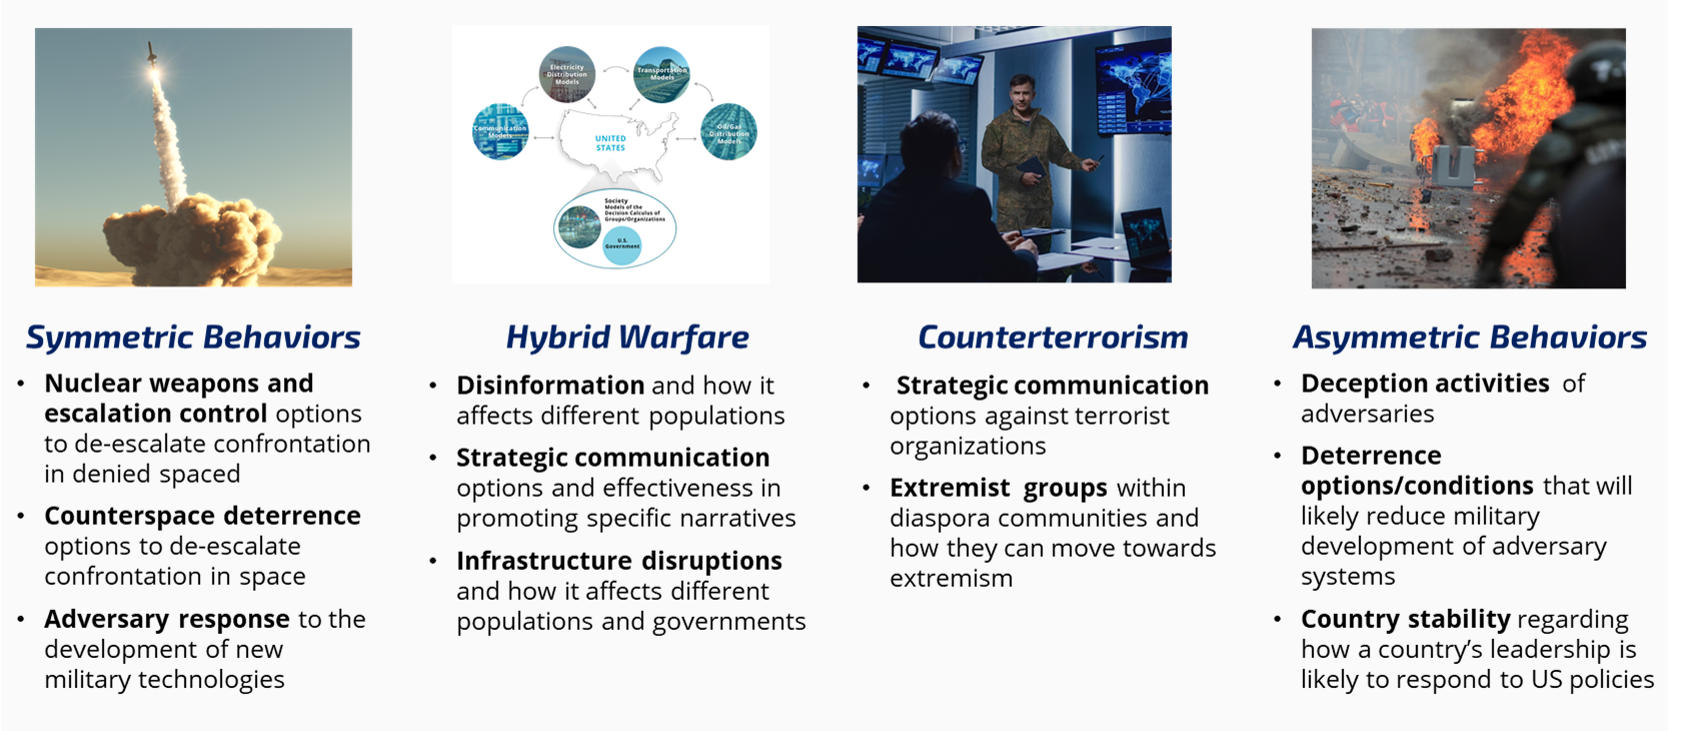 Symmetric Behaviors - Nuclear weapons and escalation control options to de-escalate confrontation in denied space. Counterspace deterrence options to de-escalate confrontation in space. Adversary response to the development of new military technologies.  Hybrid Warfare - Disinformation and how it affects different populations. Strategic communication options and effectiveness in promoting specific narratives. Infrastructure disruptions and how it affects different populations and governments. Counterterrorism -  strategic communication options against terrorist organizations. Extremist groups within diaspora communities and how they can move towards extremism. Asymmetric Behaviors - Deception activities of adversaries. Deterrence options/conditions that will likely reduce military development of adversary systems. Country Stability regarding how a country's leadership is likely to respond to US policies.